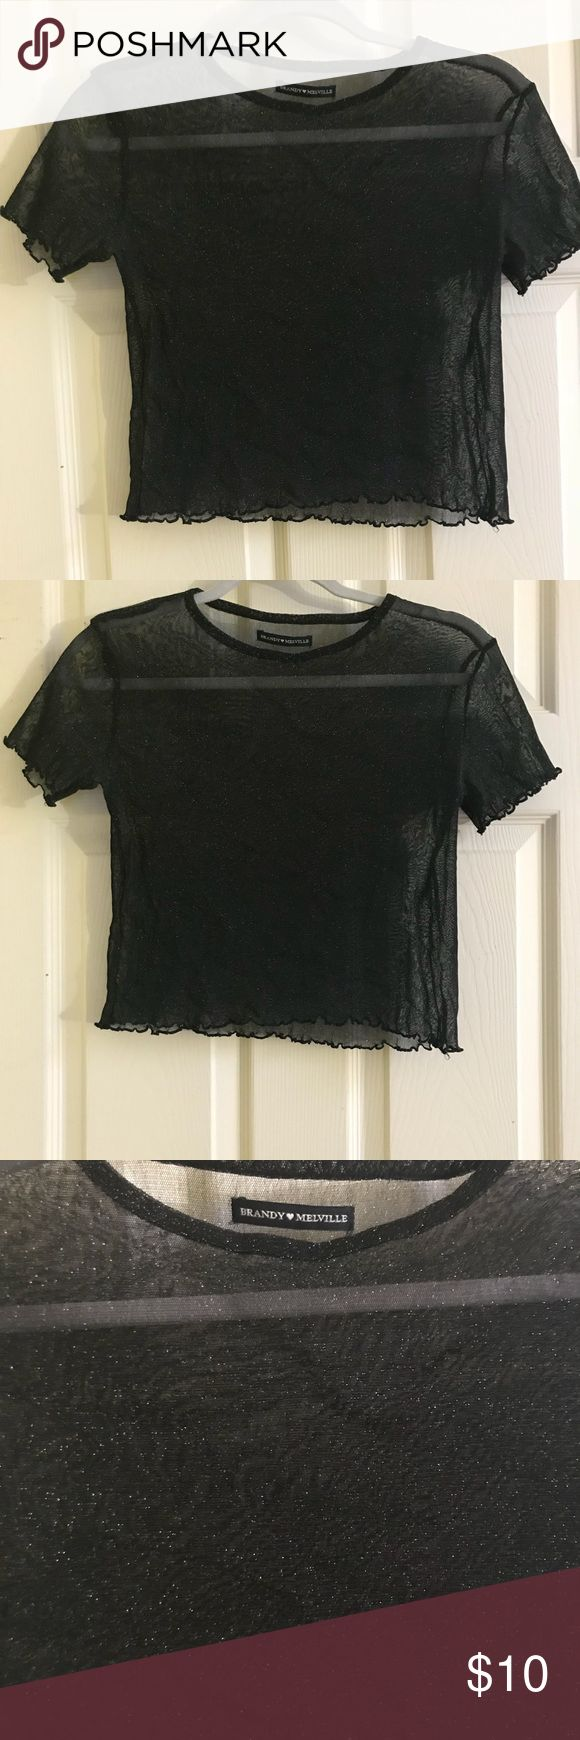 Brandy Melville sparkly black see through top. Brandy Melville sparkly black see through top. Size small. Brandy Melville Tops Crop Tops